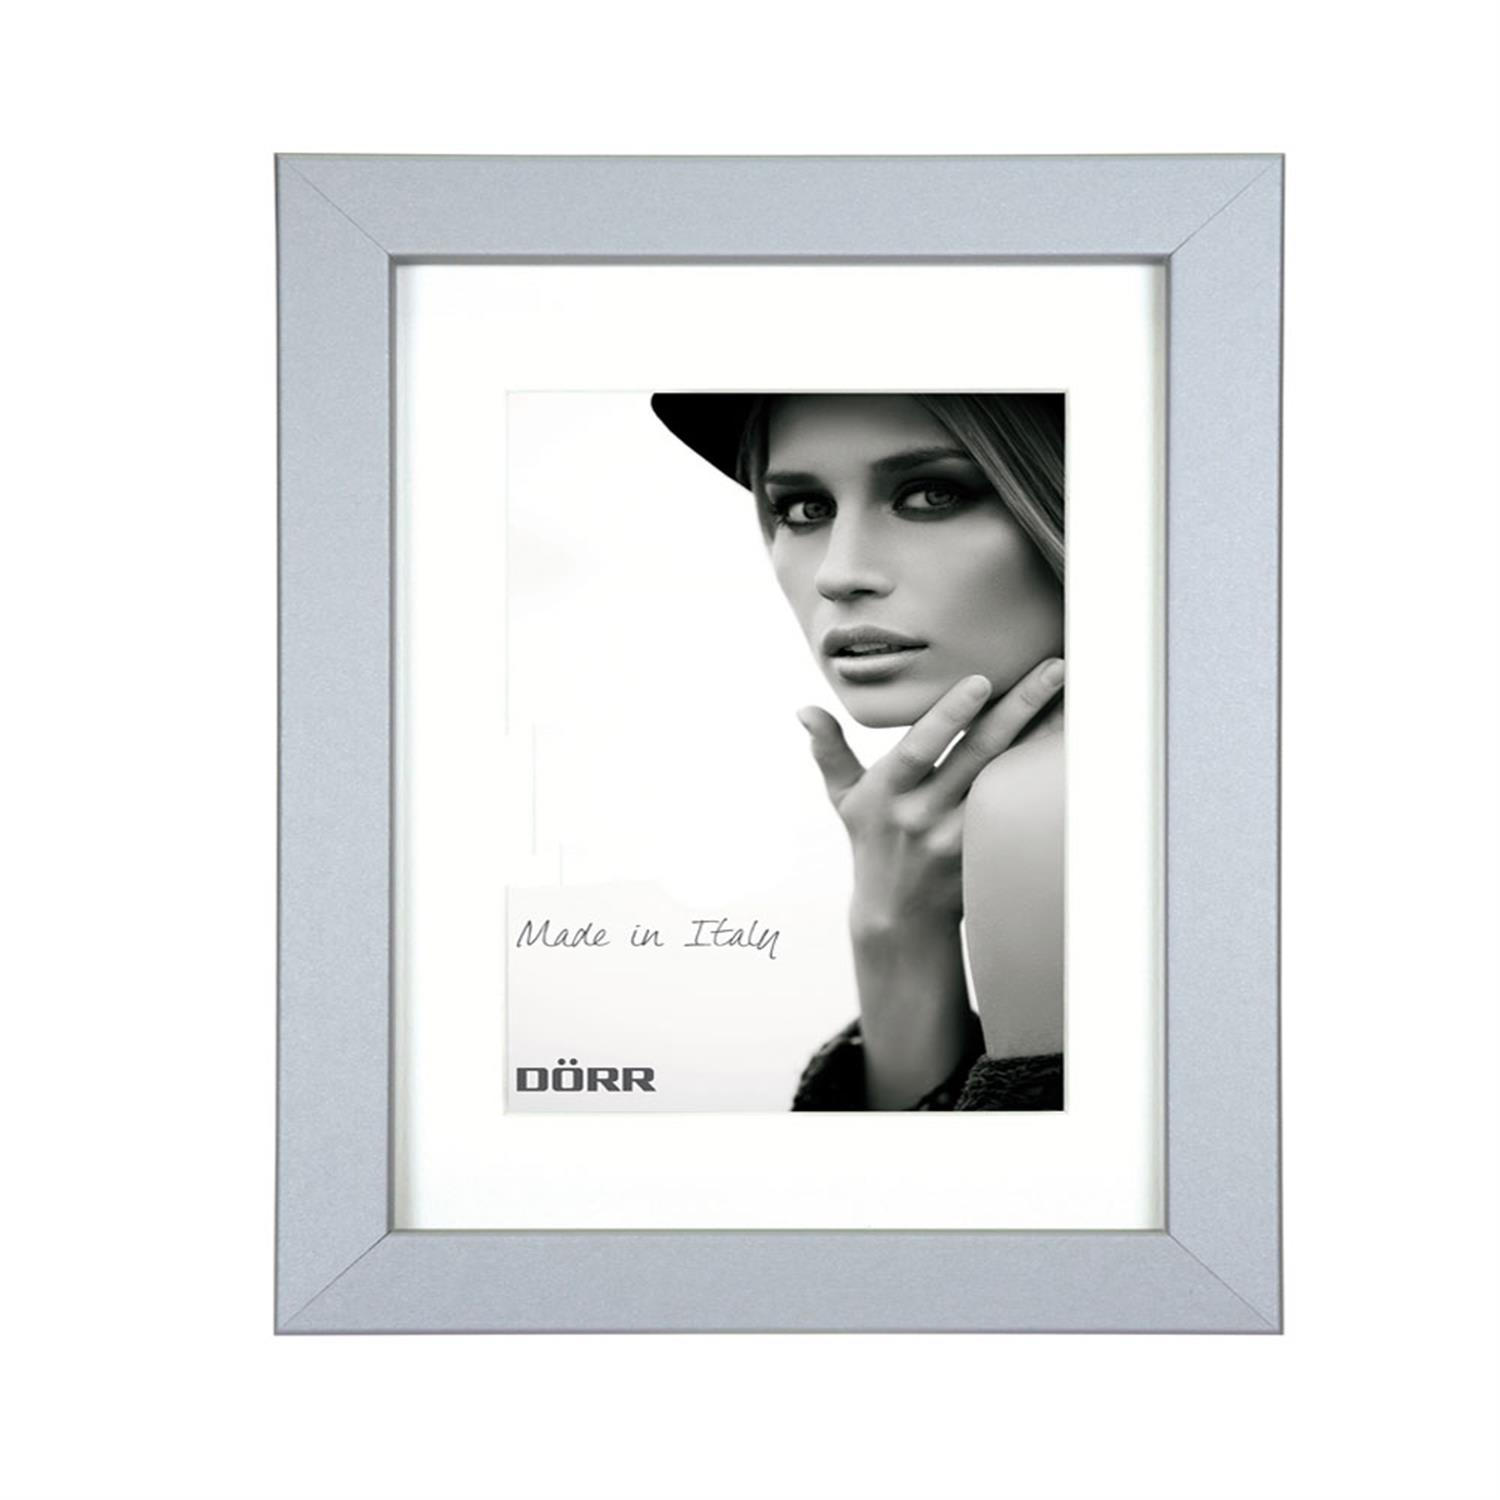 Dorr Bloc Silver 20x16 inch Wood Photo Frame with 16x12 inch insert